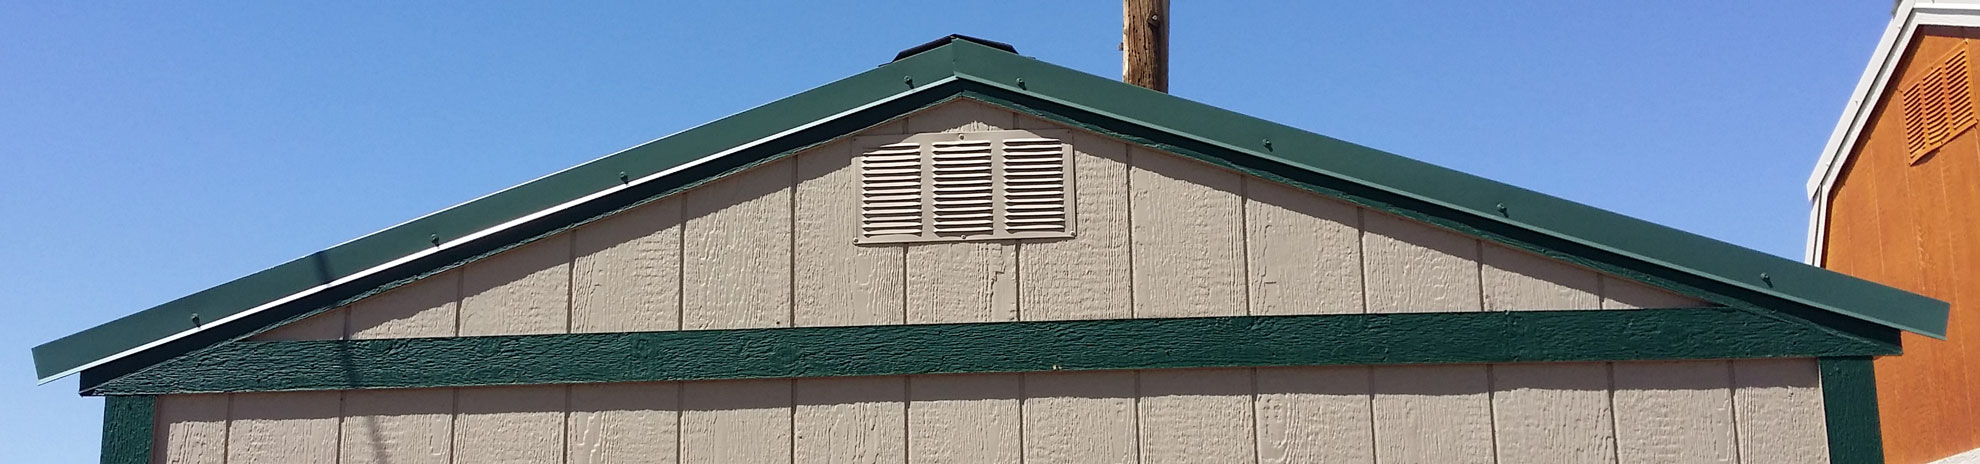 Gable Roof Installation : How to install a metal roof instead of shingles on your shed